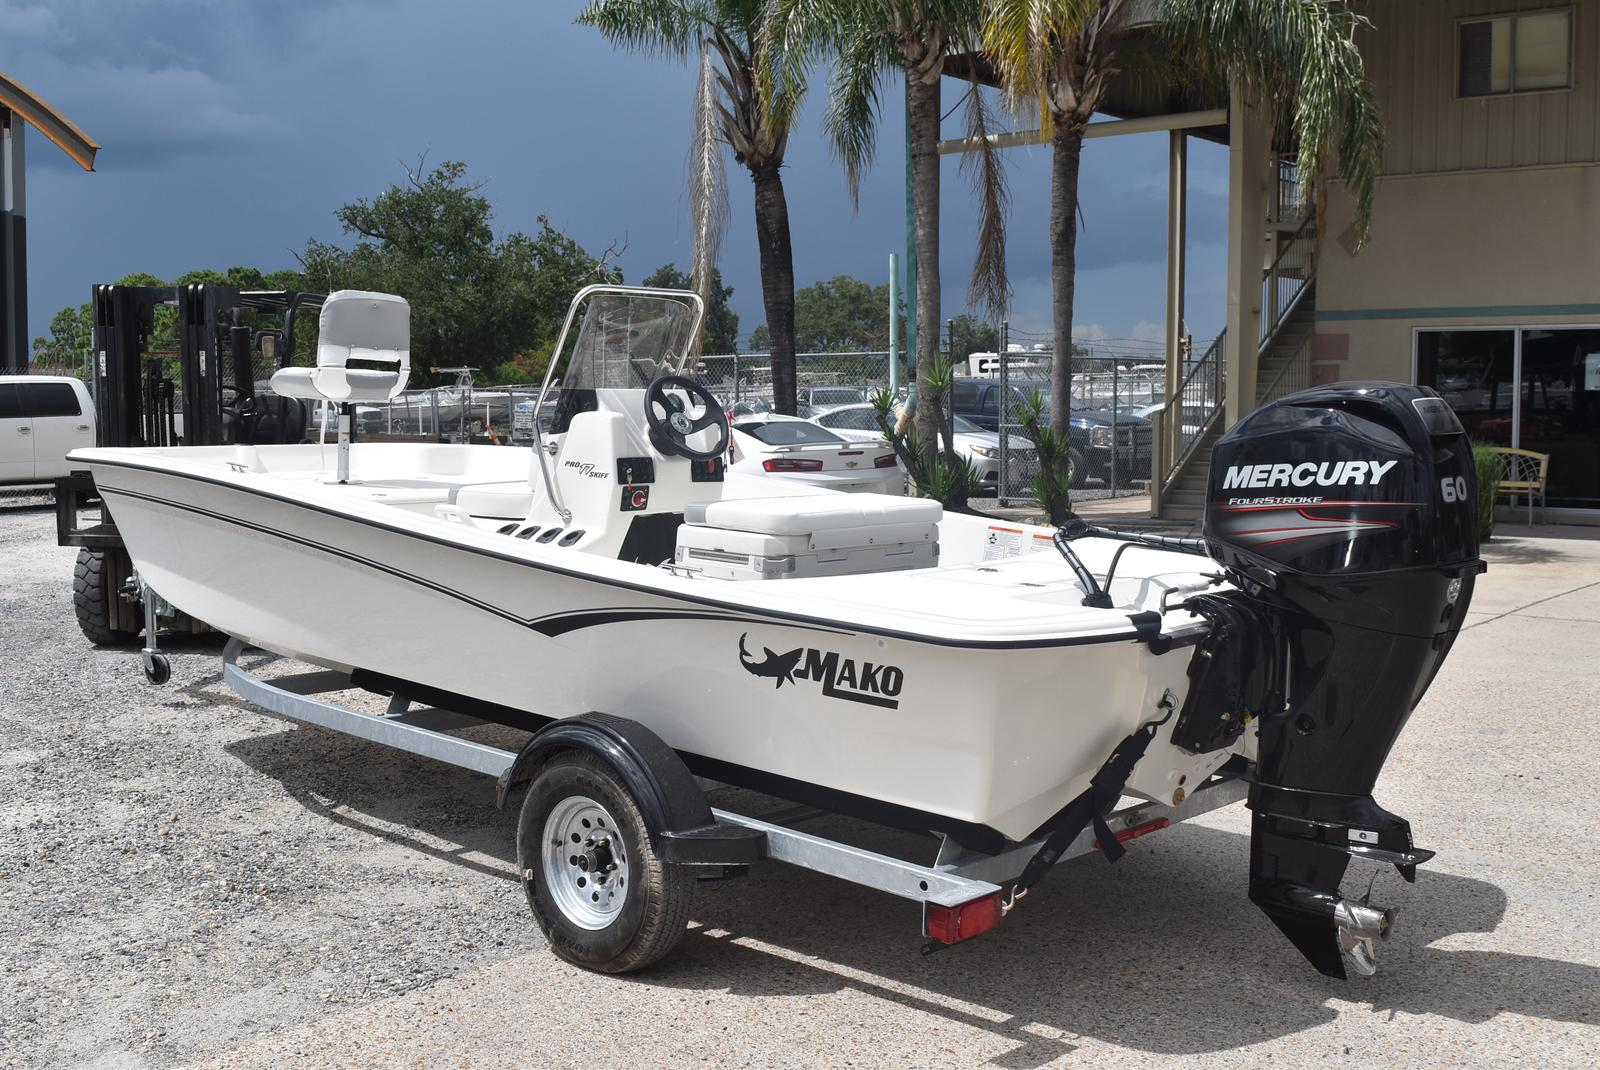 2020 Mako boat for sale, model of the boat is Pro Skiff 17, 75 ELPT & Image # 220 of 702